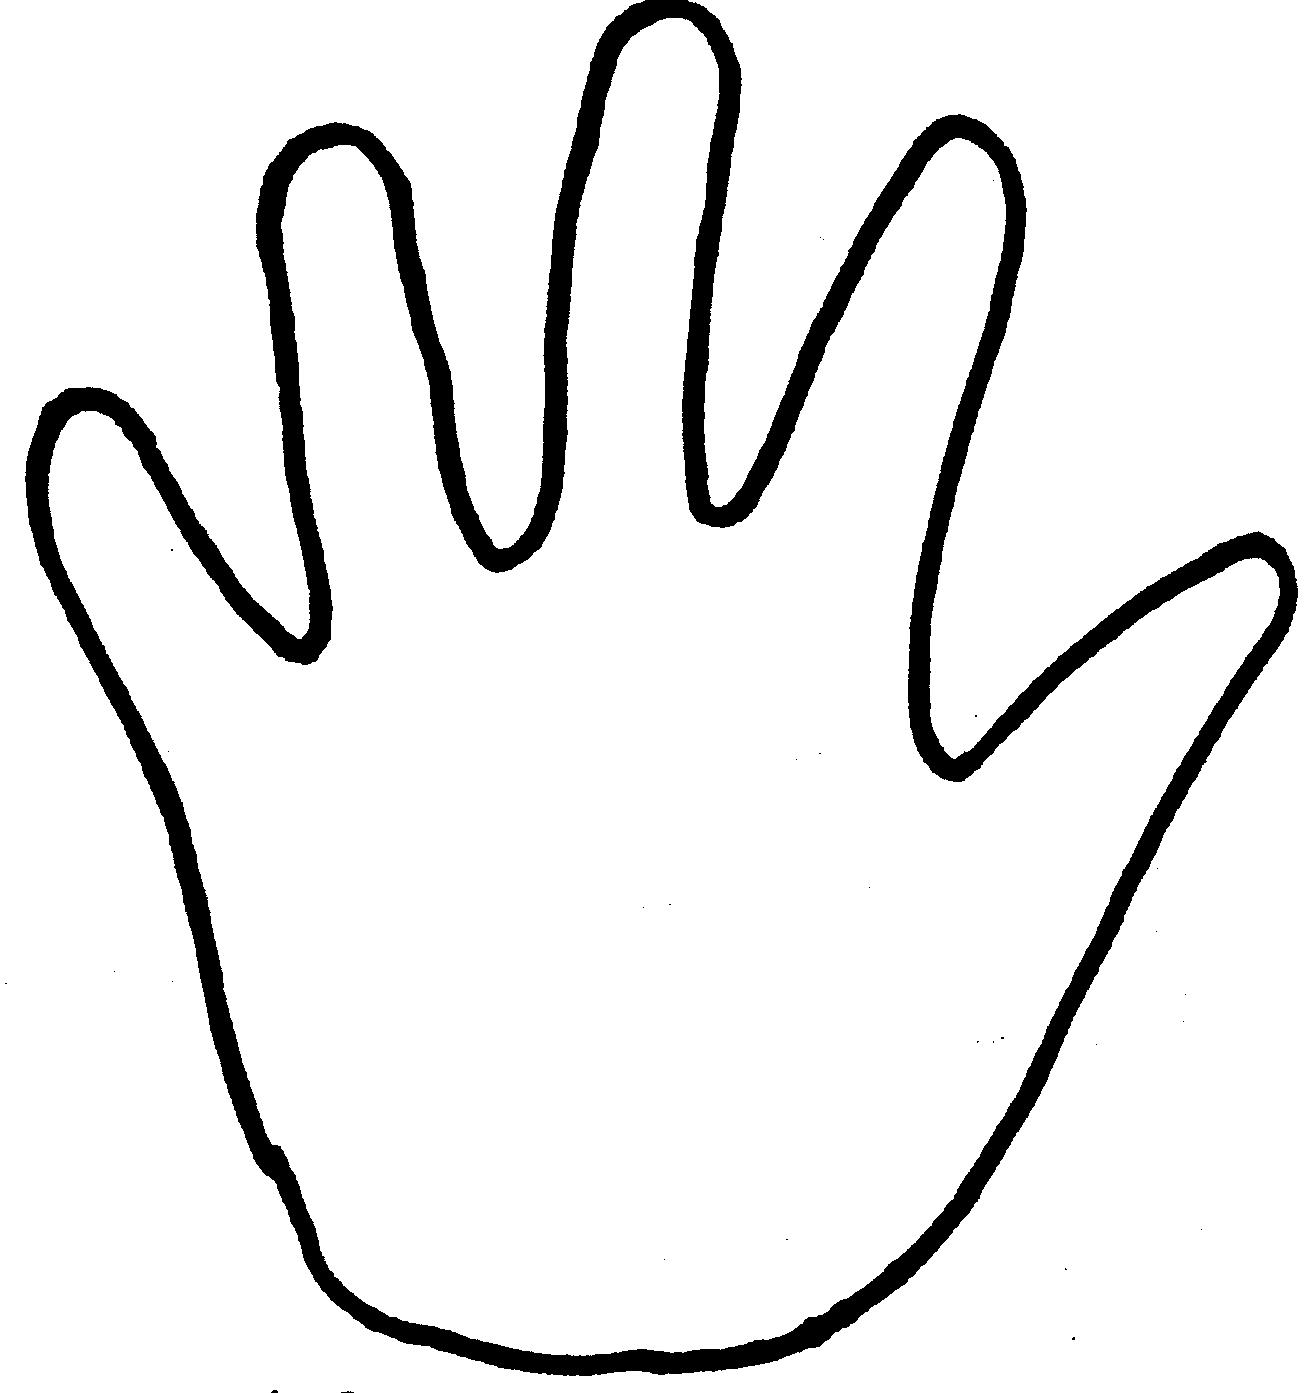 Handprint clipart helping hand Coloring Posts Helping com Coloring